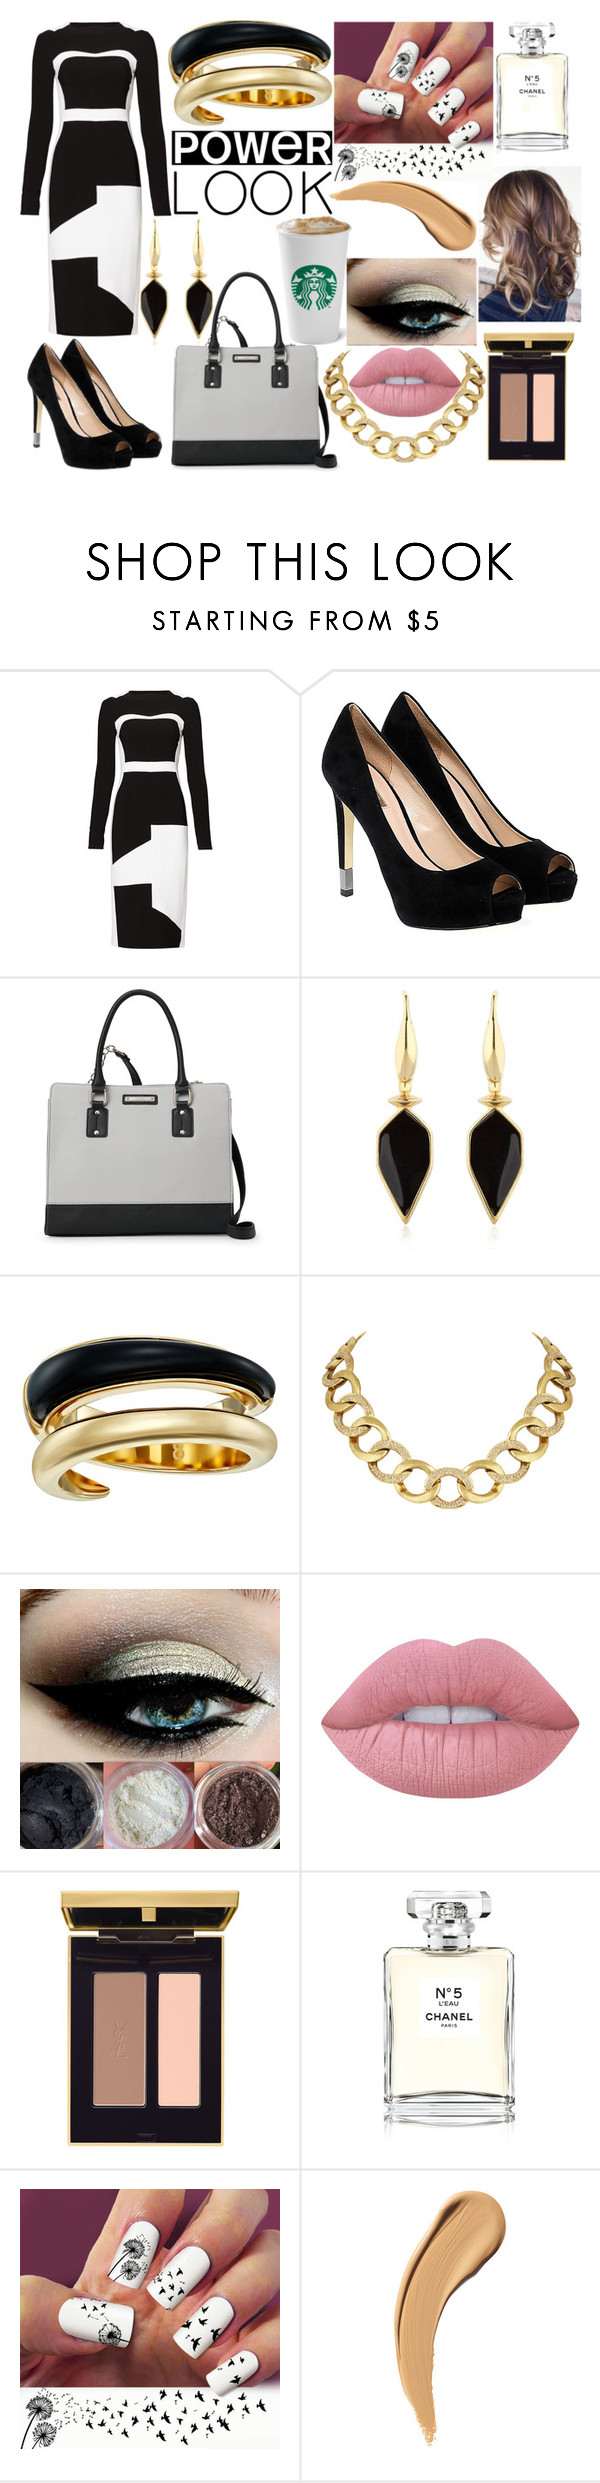 """""""Getting ready for a meeting"""" by briannacutie498 ❤ liked on Polyvore featuring Antonio Berardi, GUESS, Nine West, Isabel Marant, Michael Kors, House of Harlow 1960, Lime Crime and Chanel"""